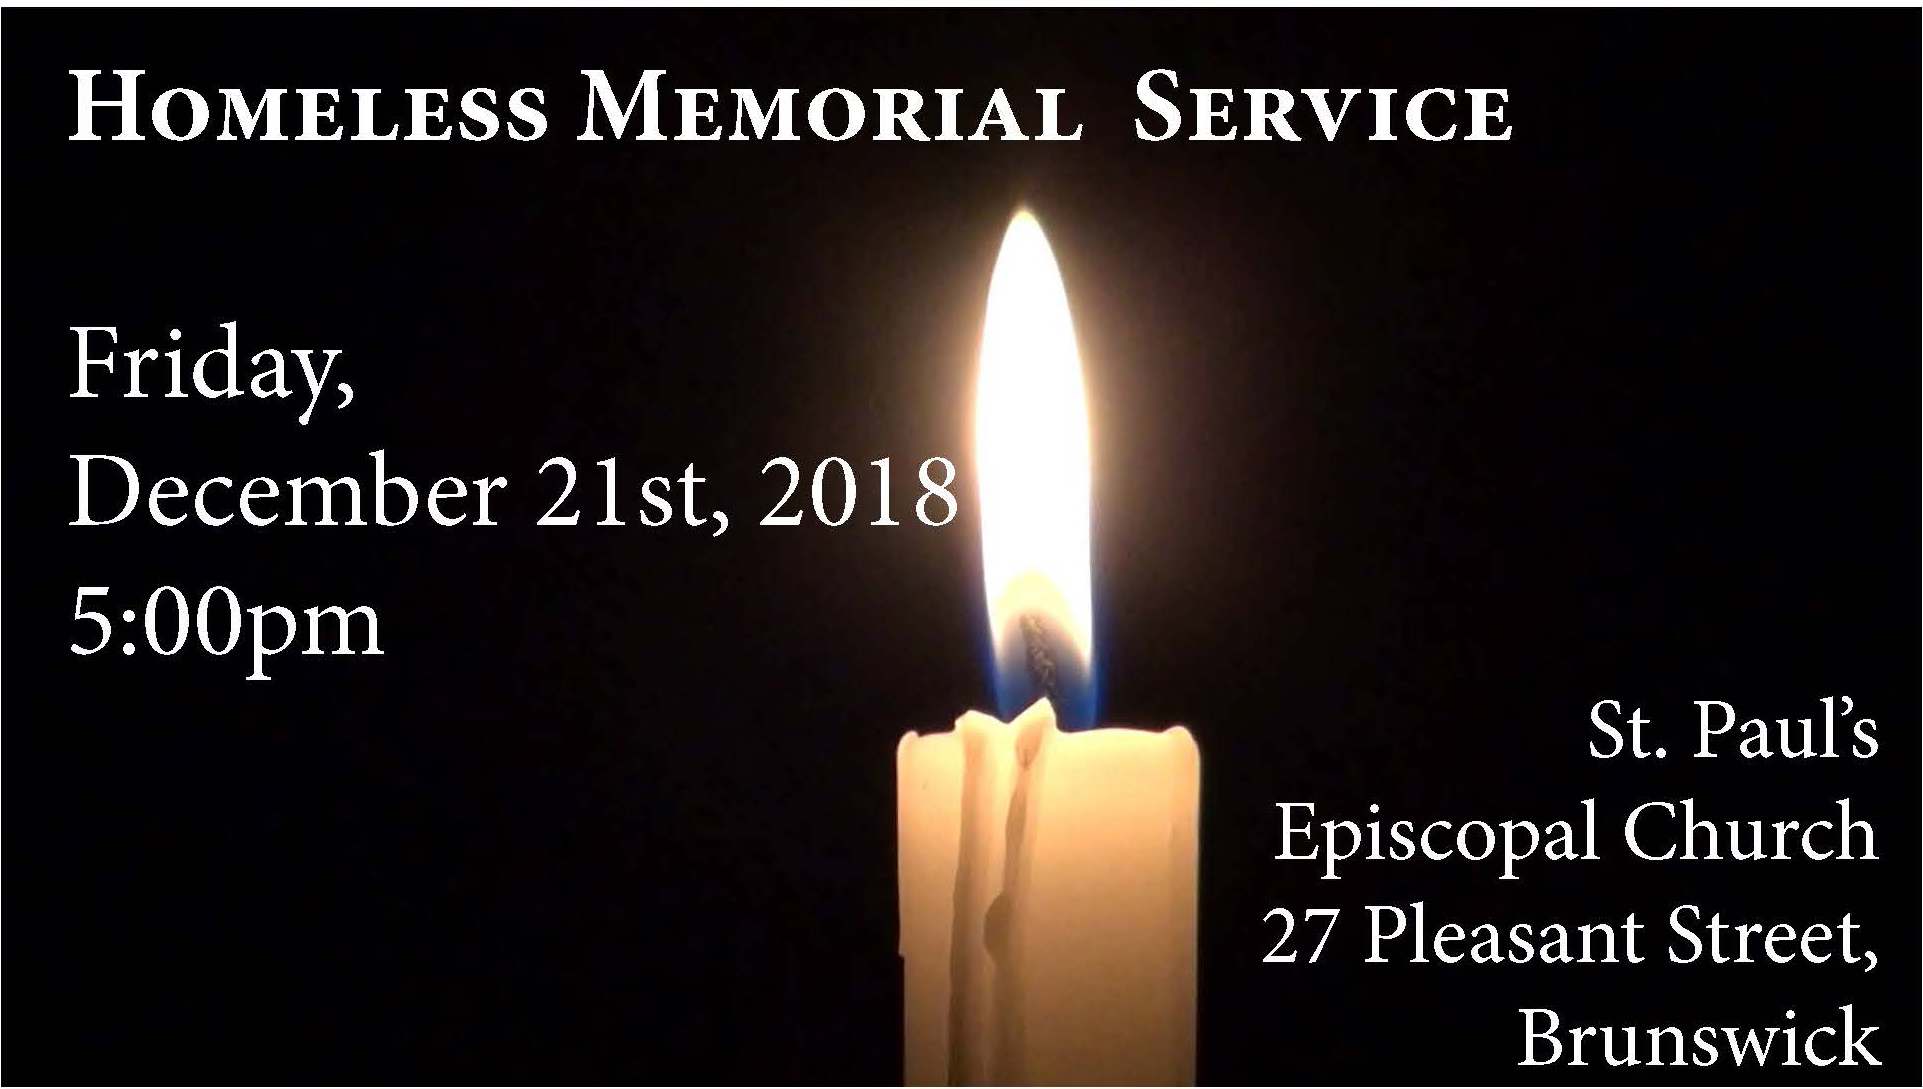 Join Us for the Homeless Memorial Service on 12/21/18